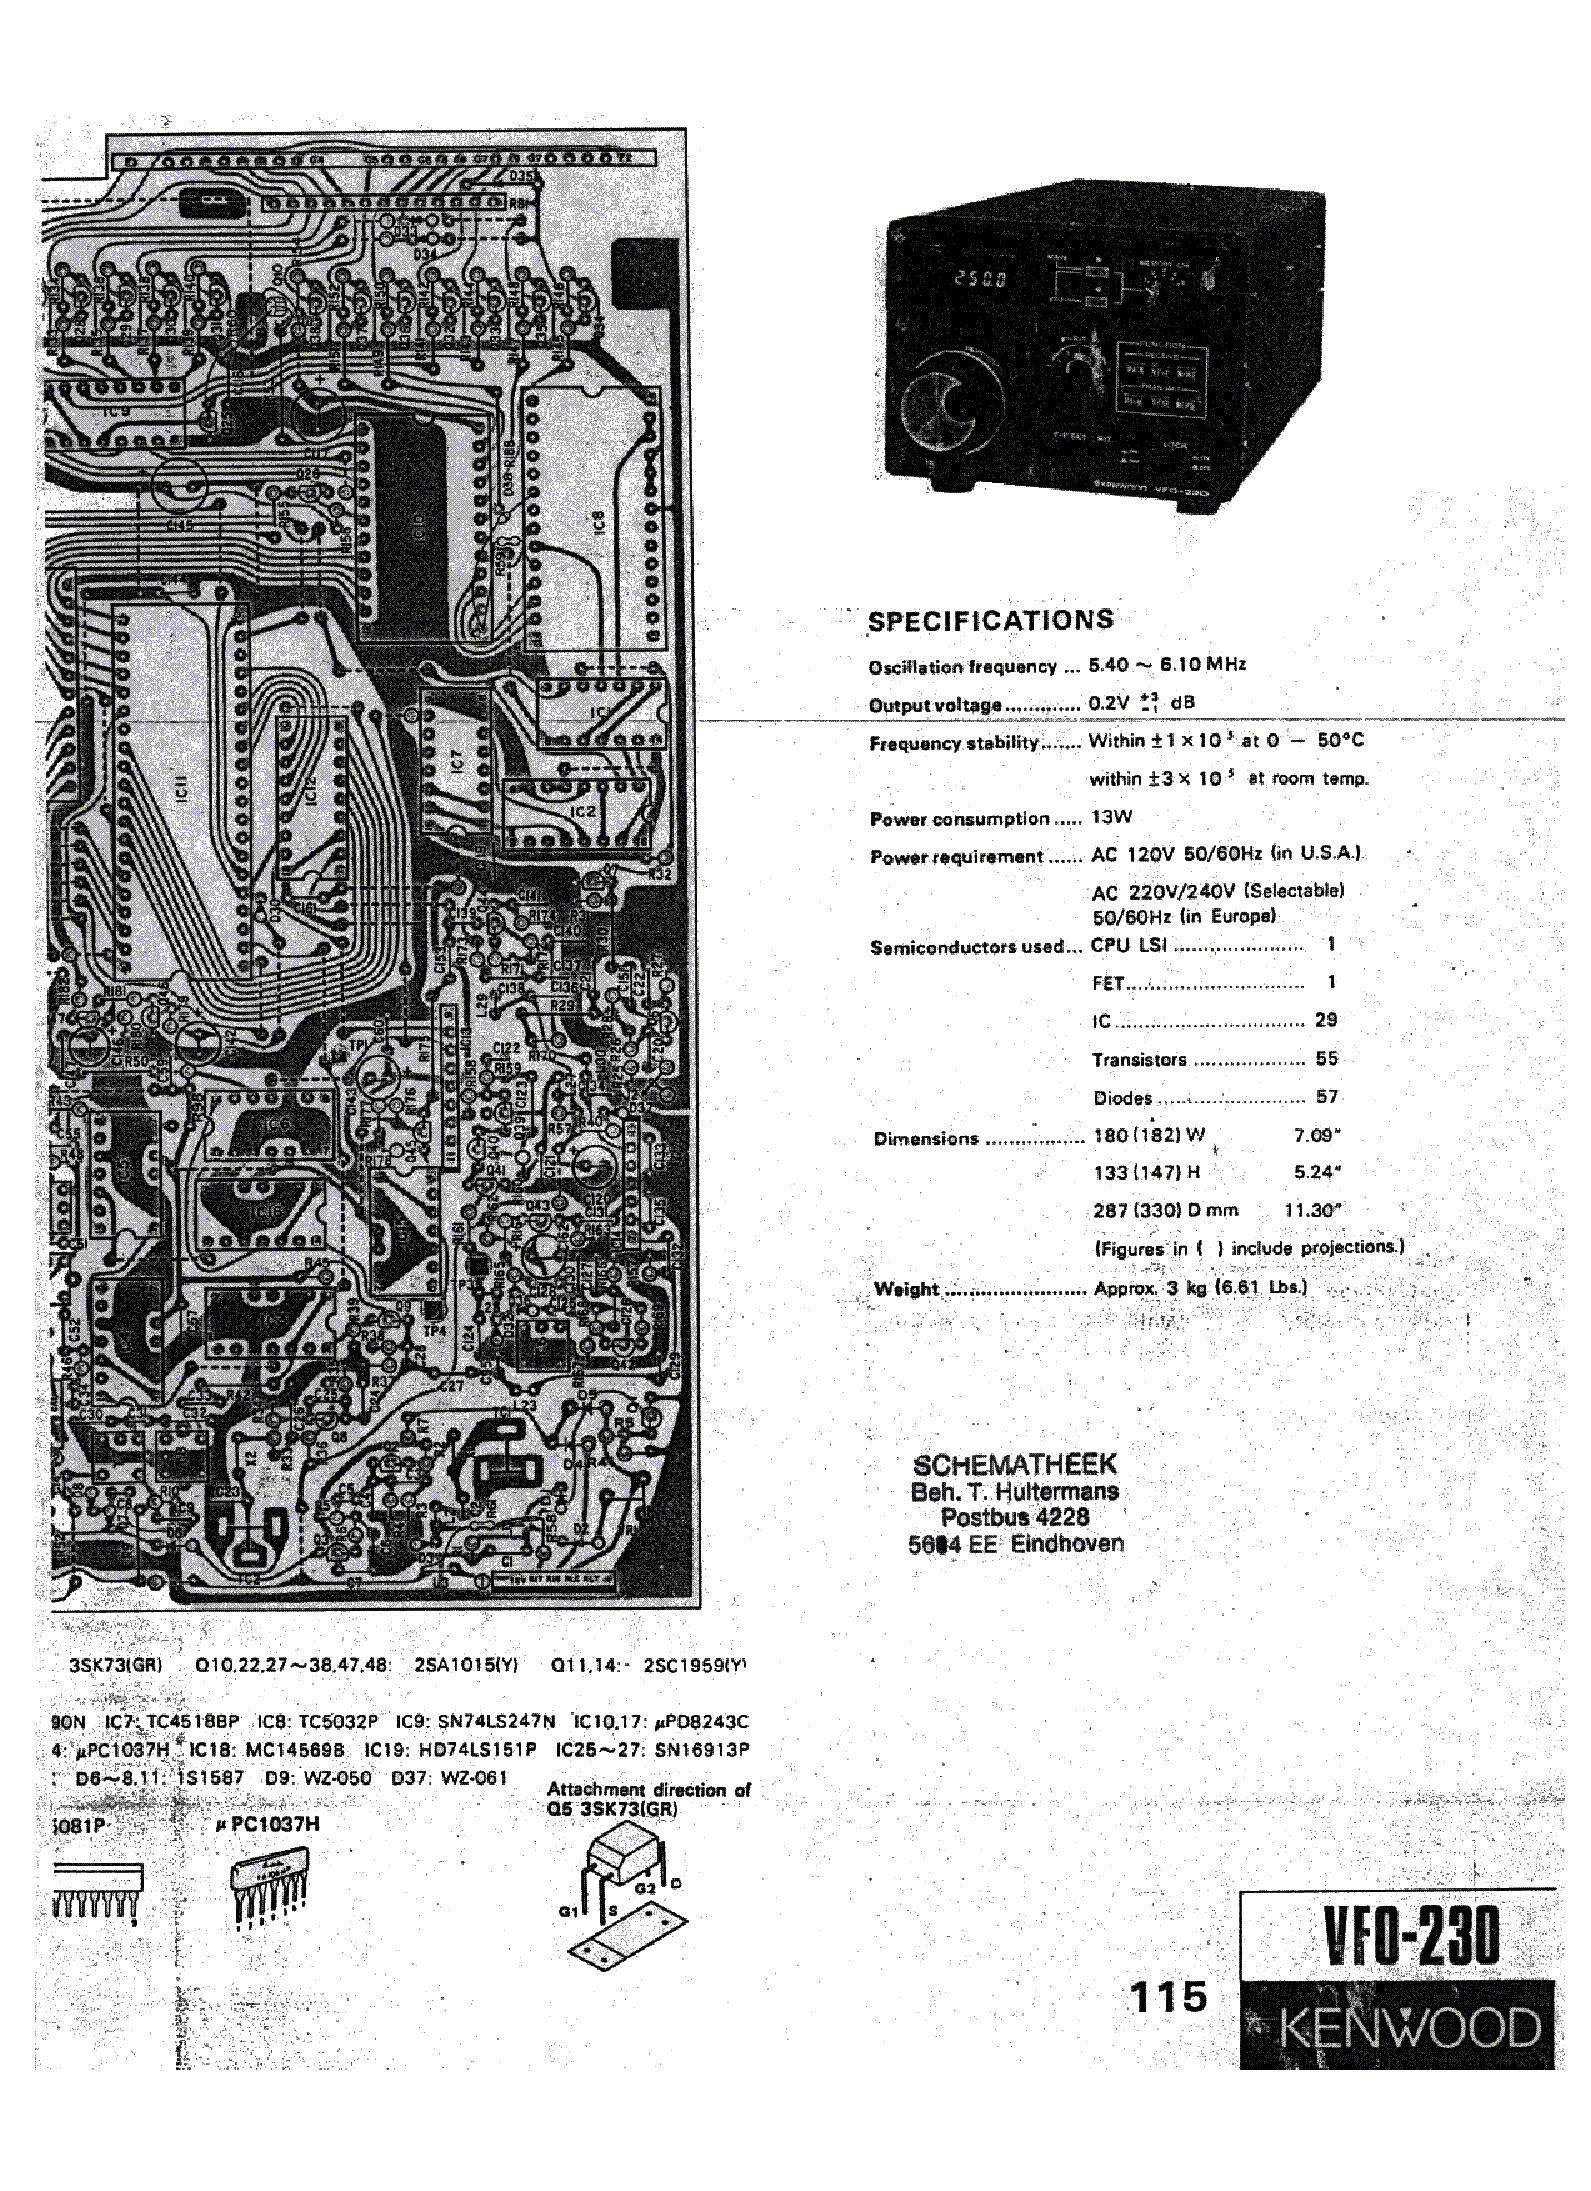 KENWOOD VFO-230 SCH service manual (1st page)